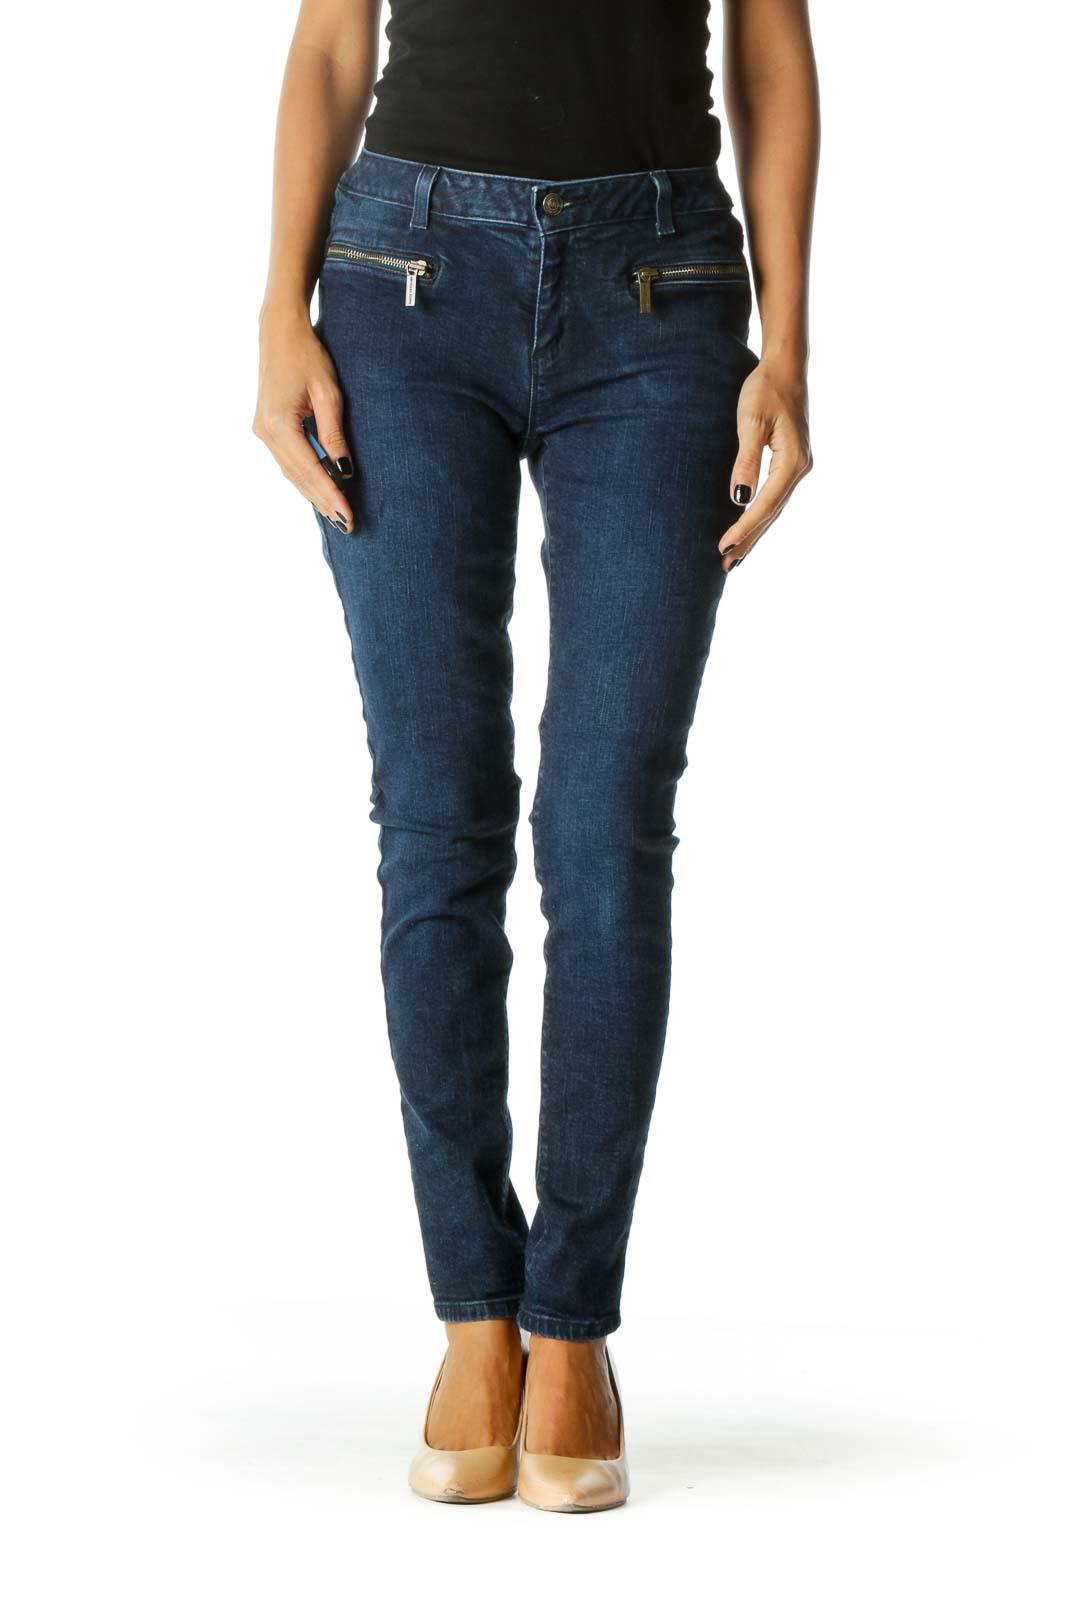 Blue Dark Wash Zipper Details Skinny Denim Jeans